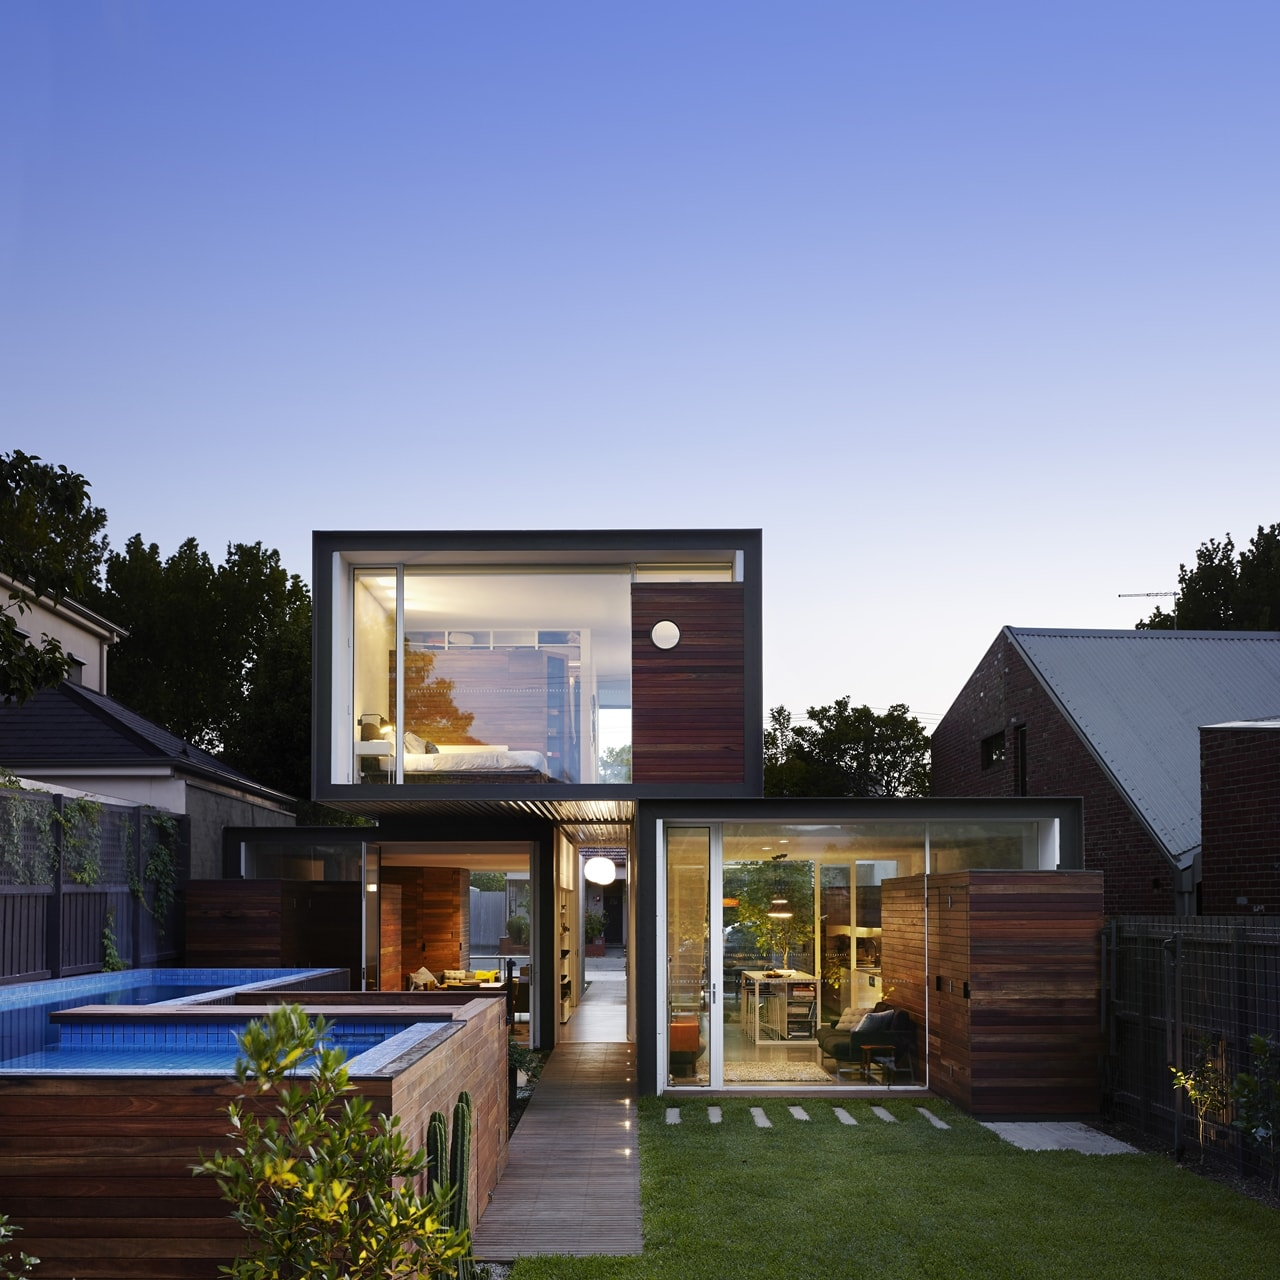 Backyard facade of open house by Austin Maynard Architects